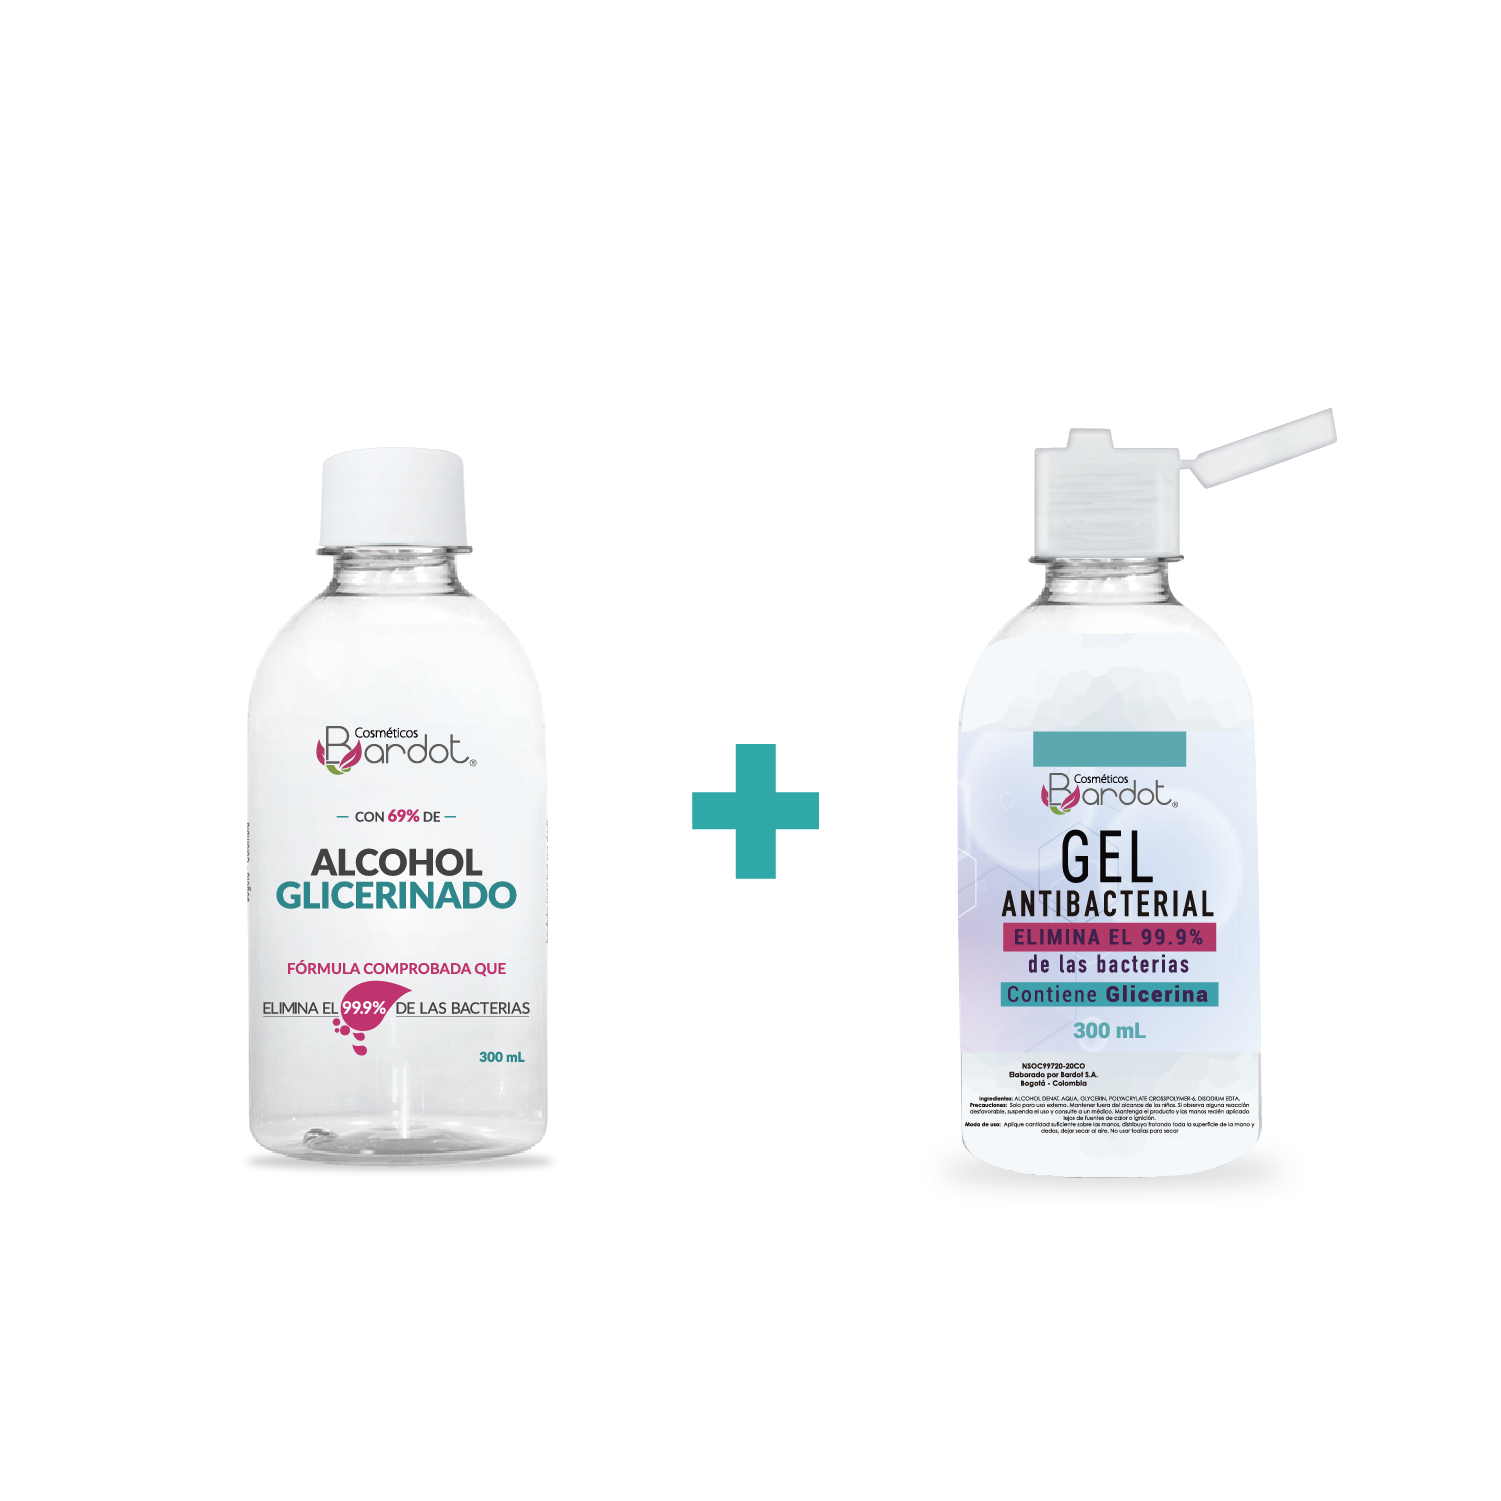 Kit Gel Antibacterial de 300 mL y Alcohol Glicerinado de 300 mL